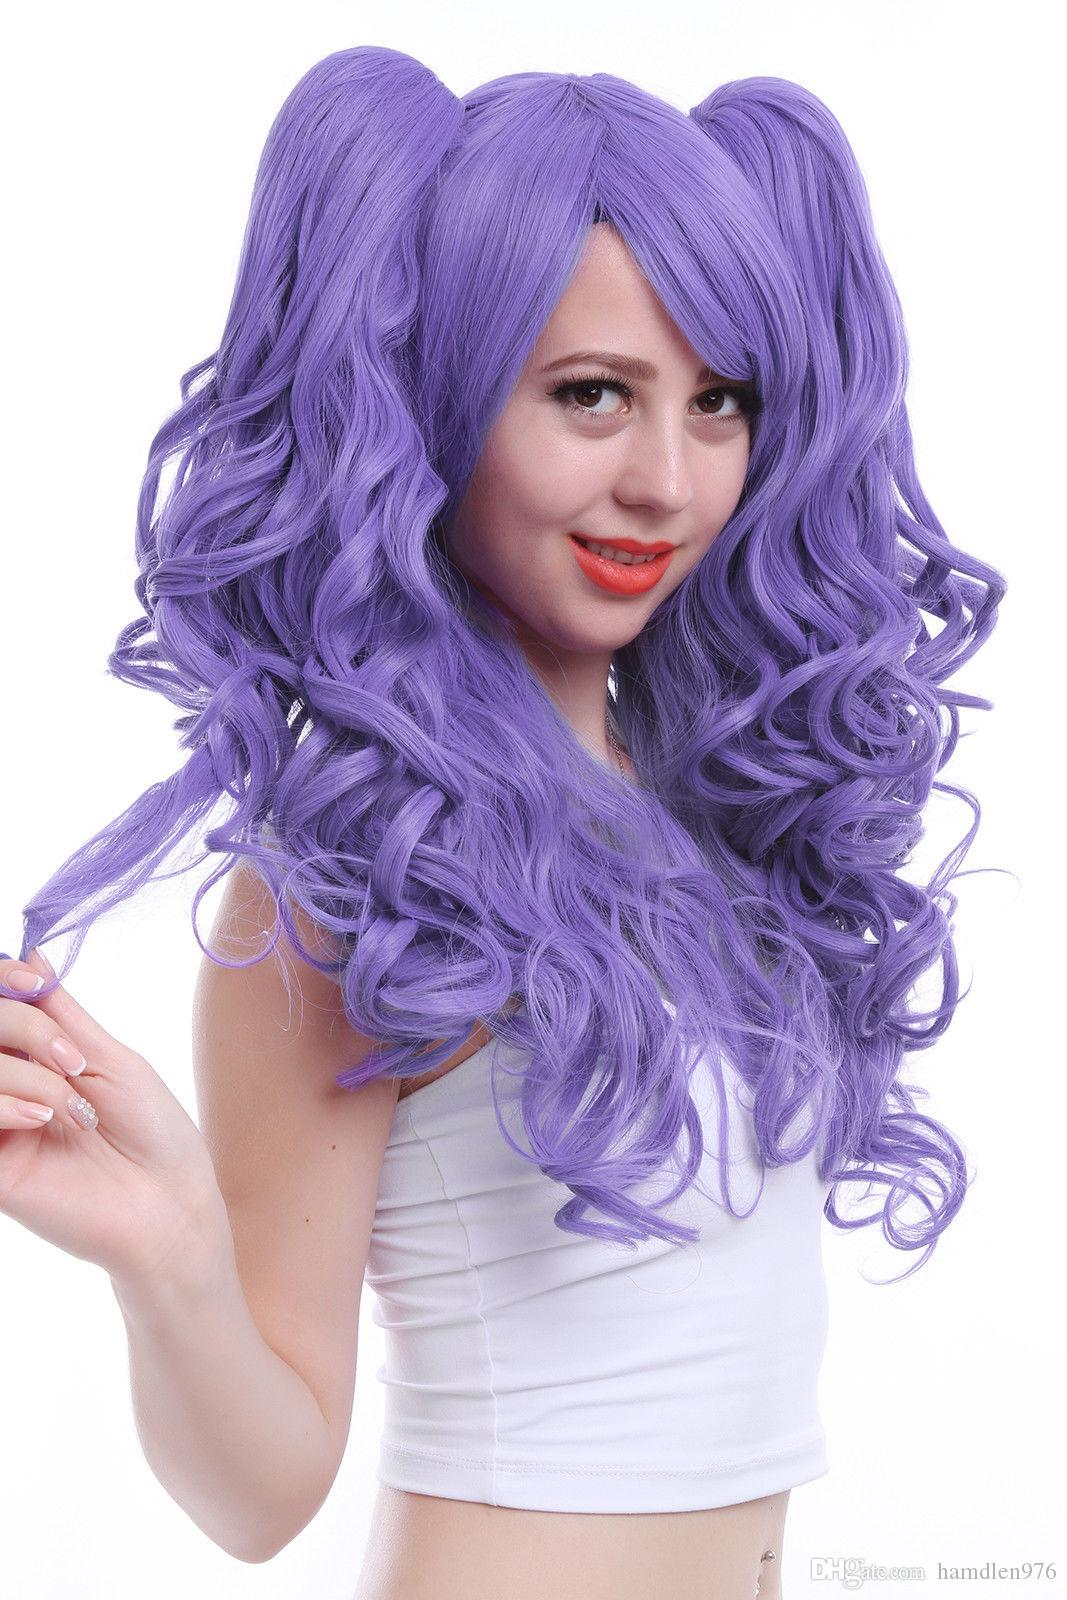 ≫≫≫Womens Lolita Long Curly Wavy Ponytails Purple Cosplay Wig Heat  Resistant Wigs Lace Front Wig Caps For Wig Making Lace Cap For Wig Making  From ... 7ebed470d